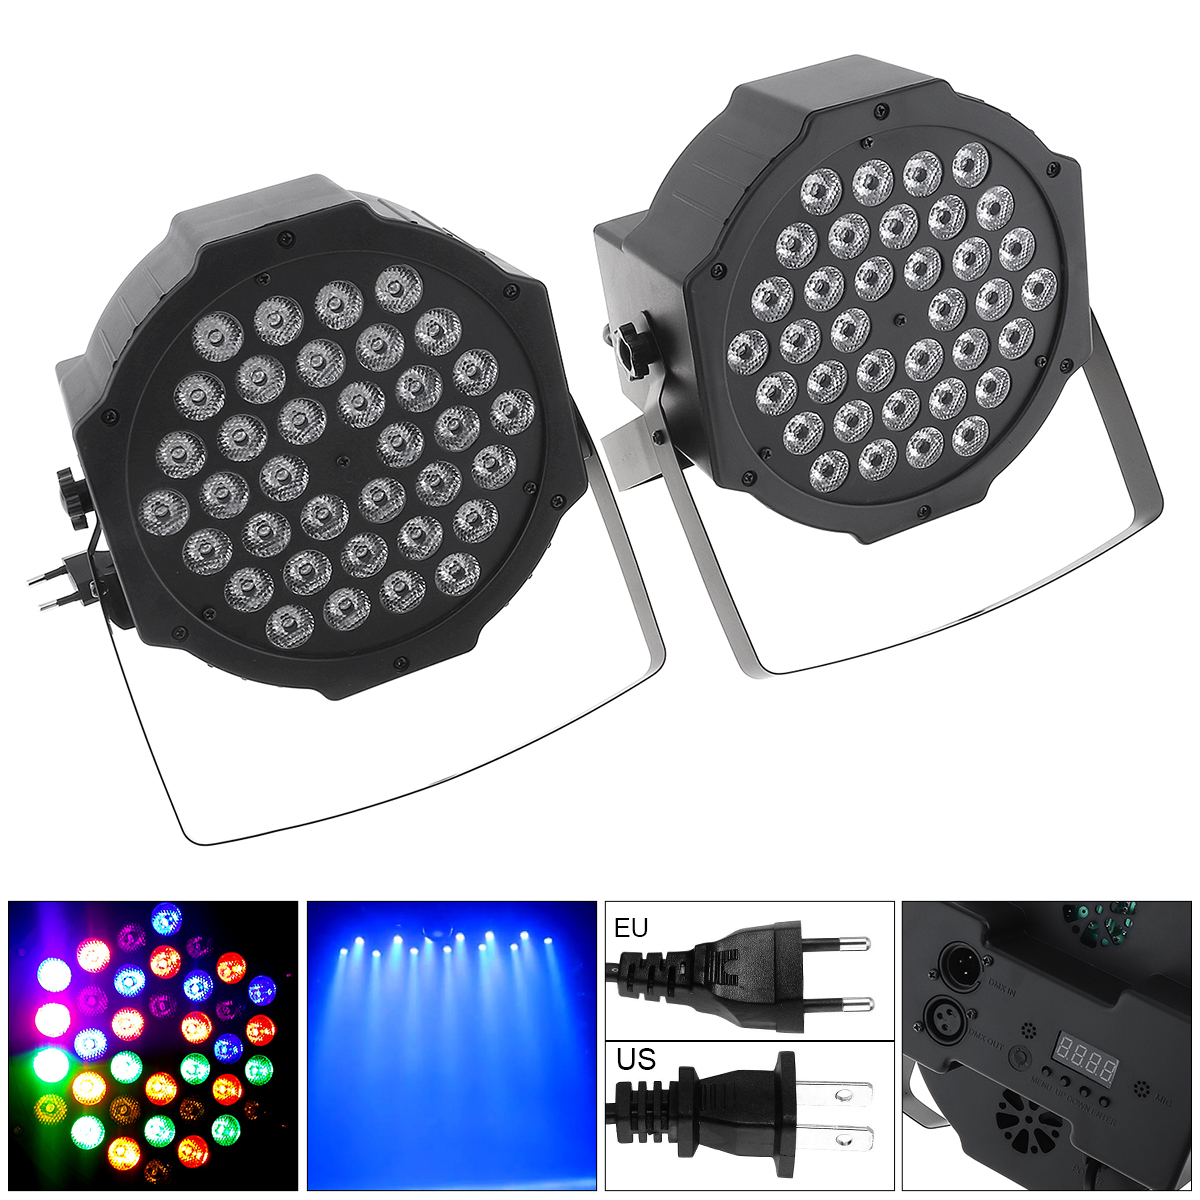 Sale 2pcs 36LED RGB Stroboscope Flash Lamp with Stand and DMX Interface for Disco Stage Bar